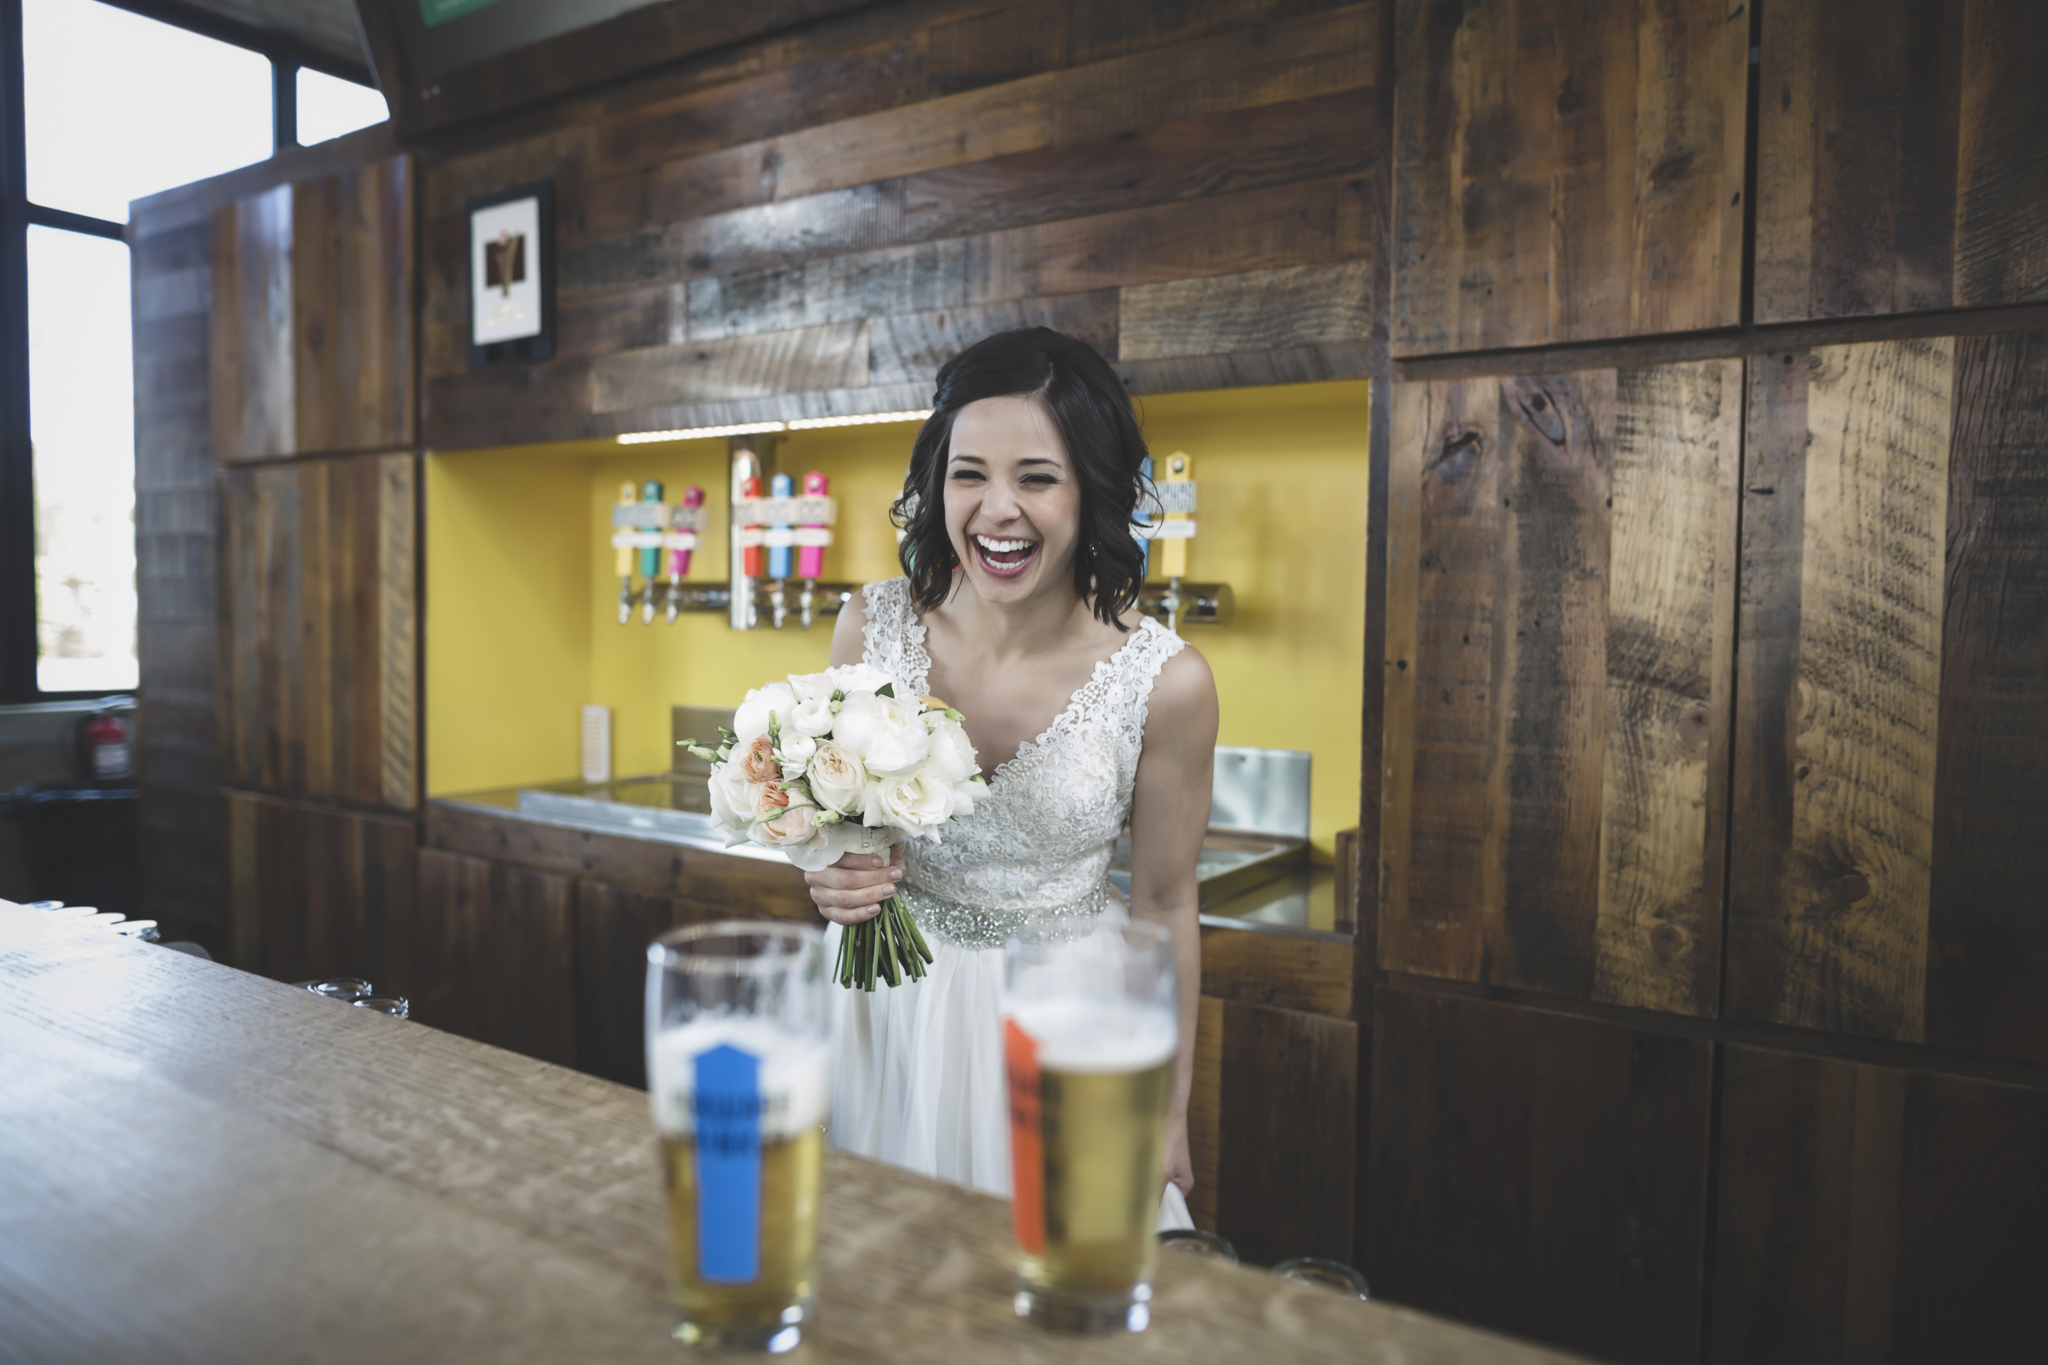 53 bauhaus brewery northeast minneapolis wedding photographer.jpg